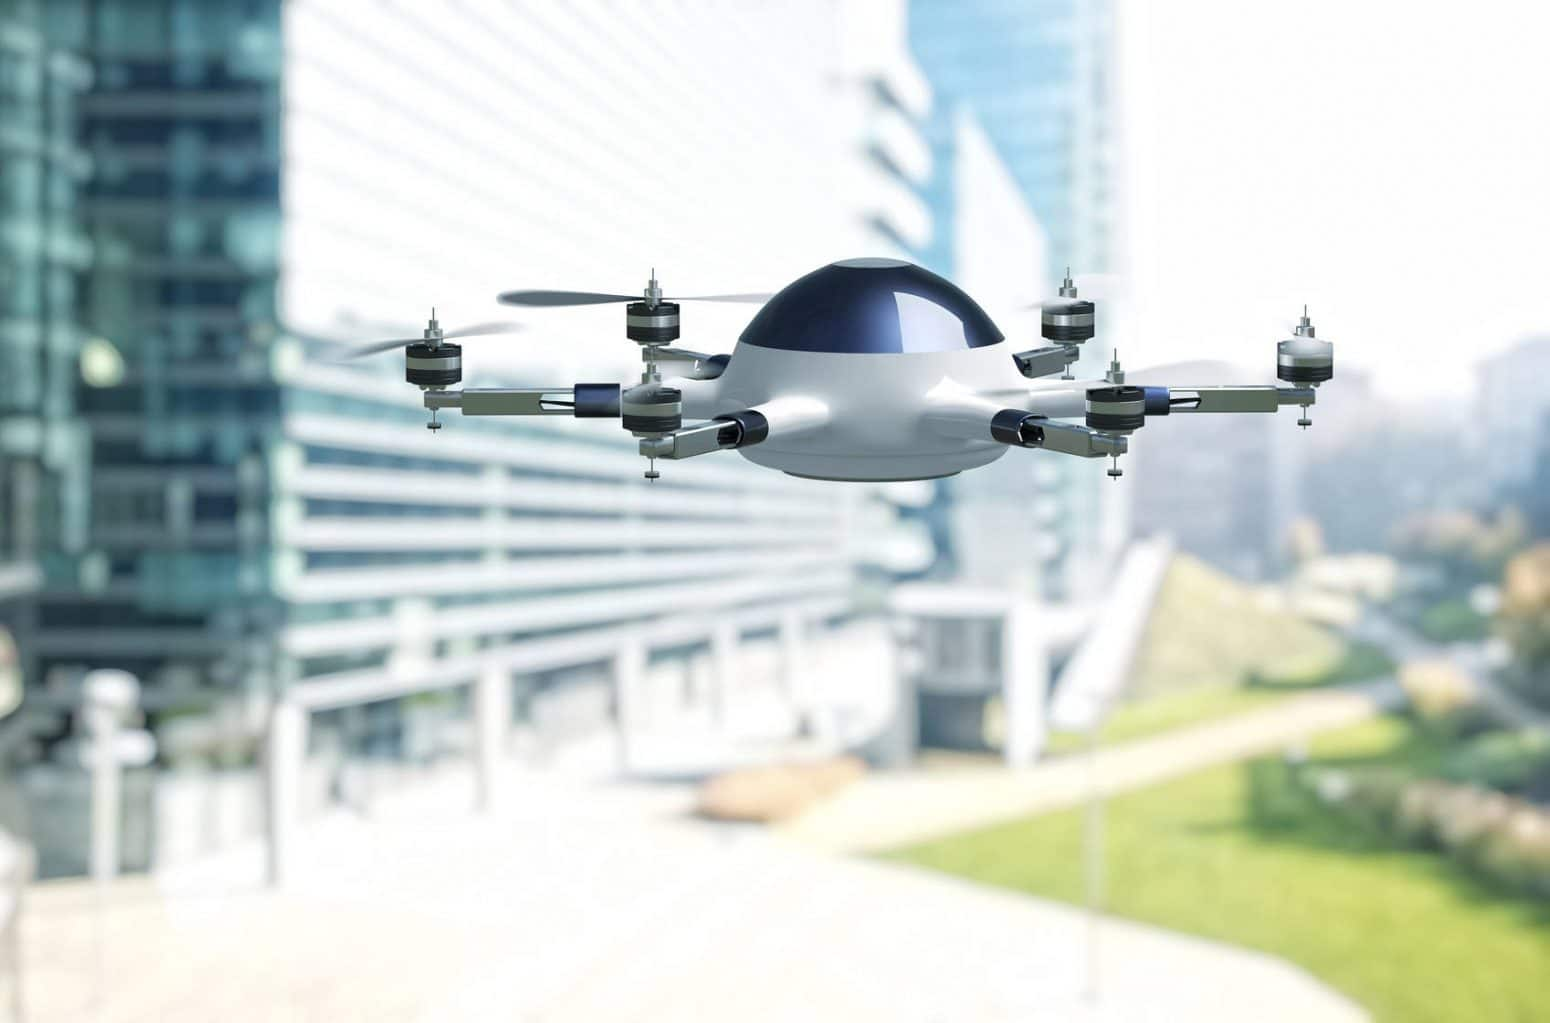 Drones et big data visuel, un enjeu marketing au service des grandes marques